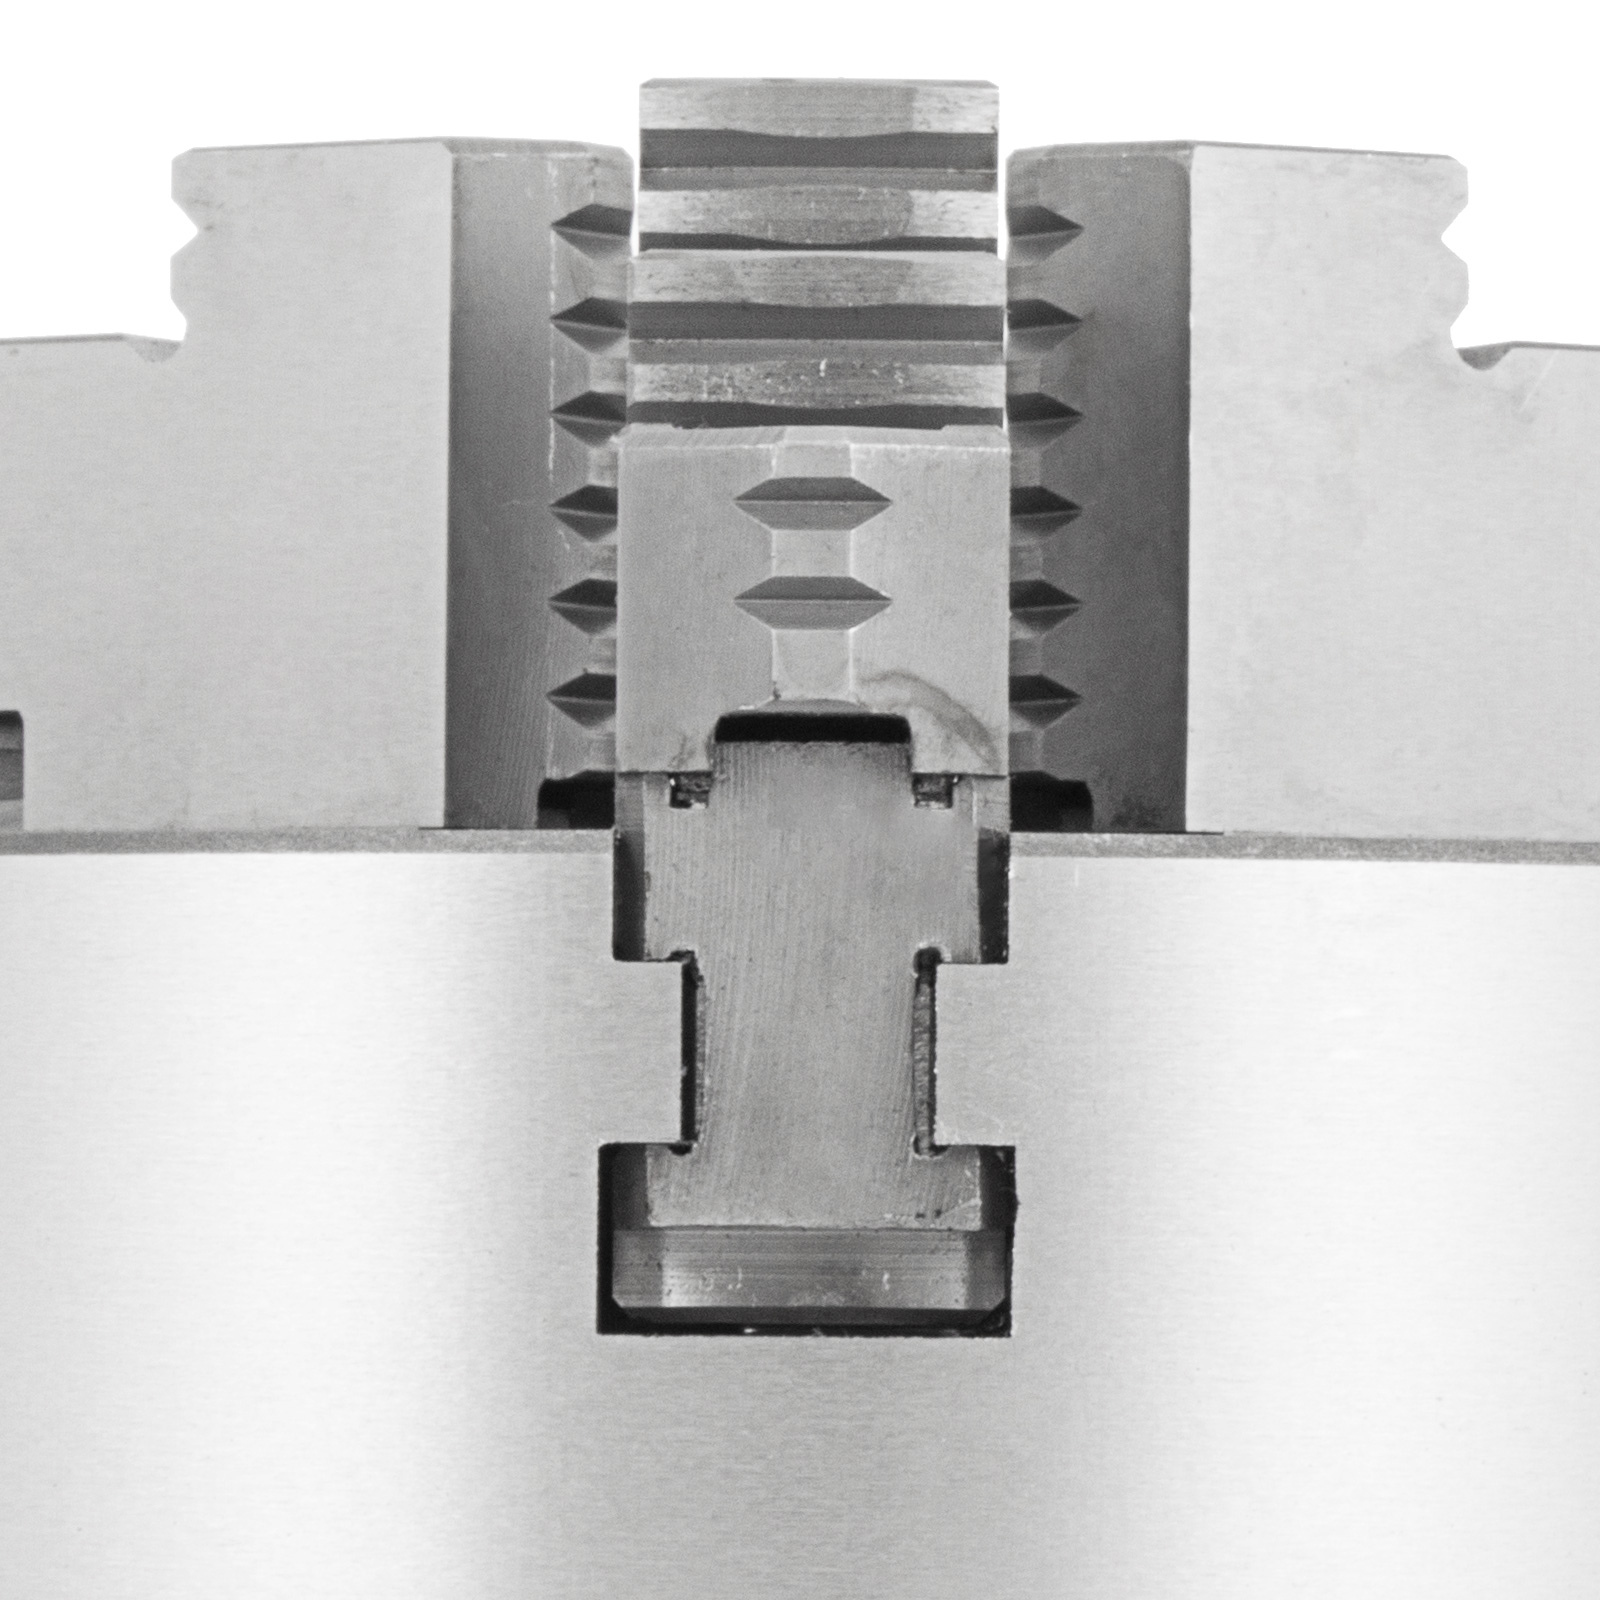 160-400mm-3-Jaw-Metal-Lathe-Chuck-Reversible-Independent-Key-Handle thumbnail 36